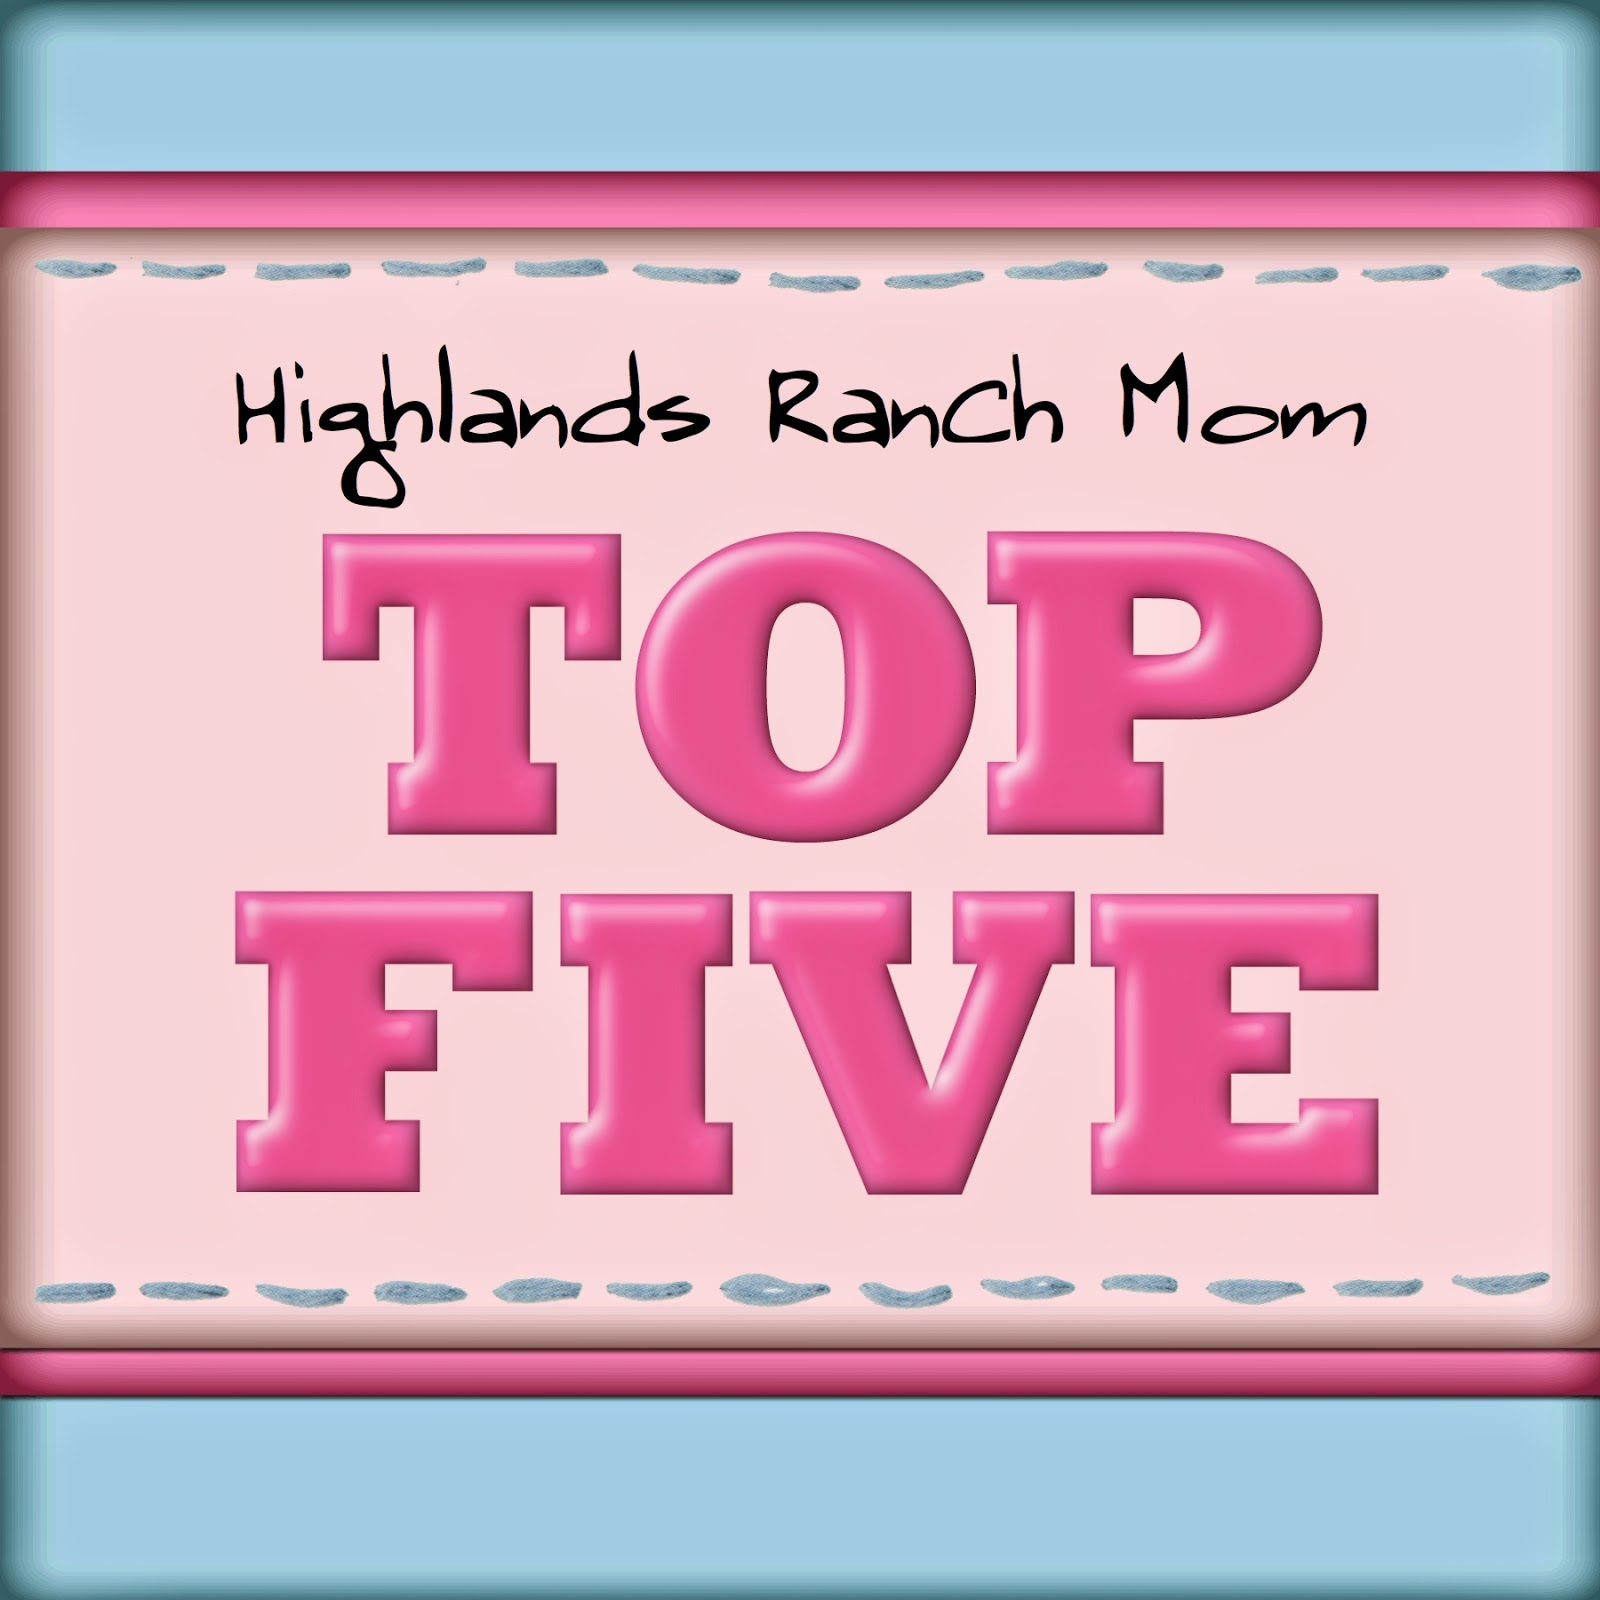 Highlands Ranch Mom: Top Five